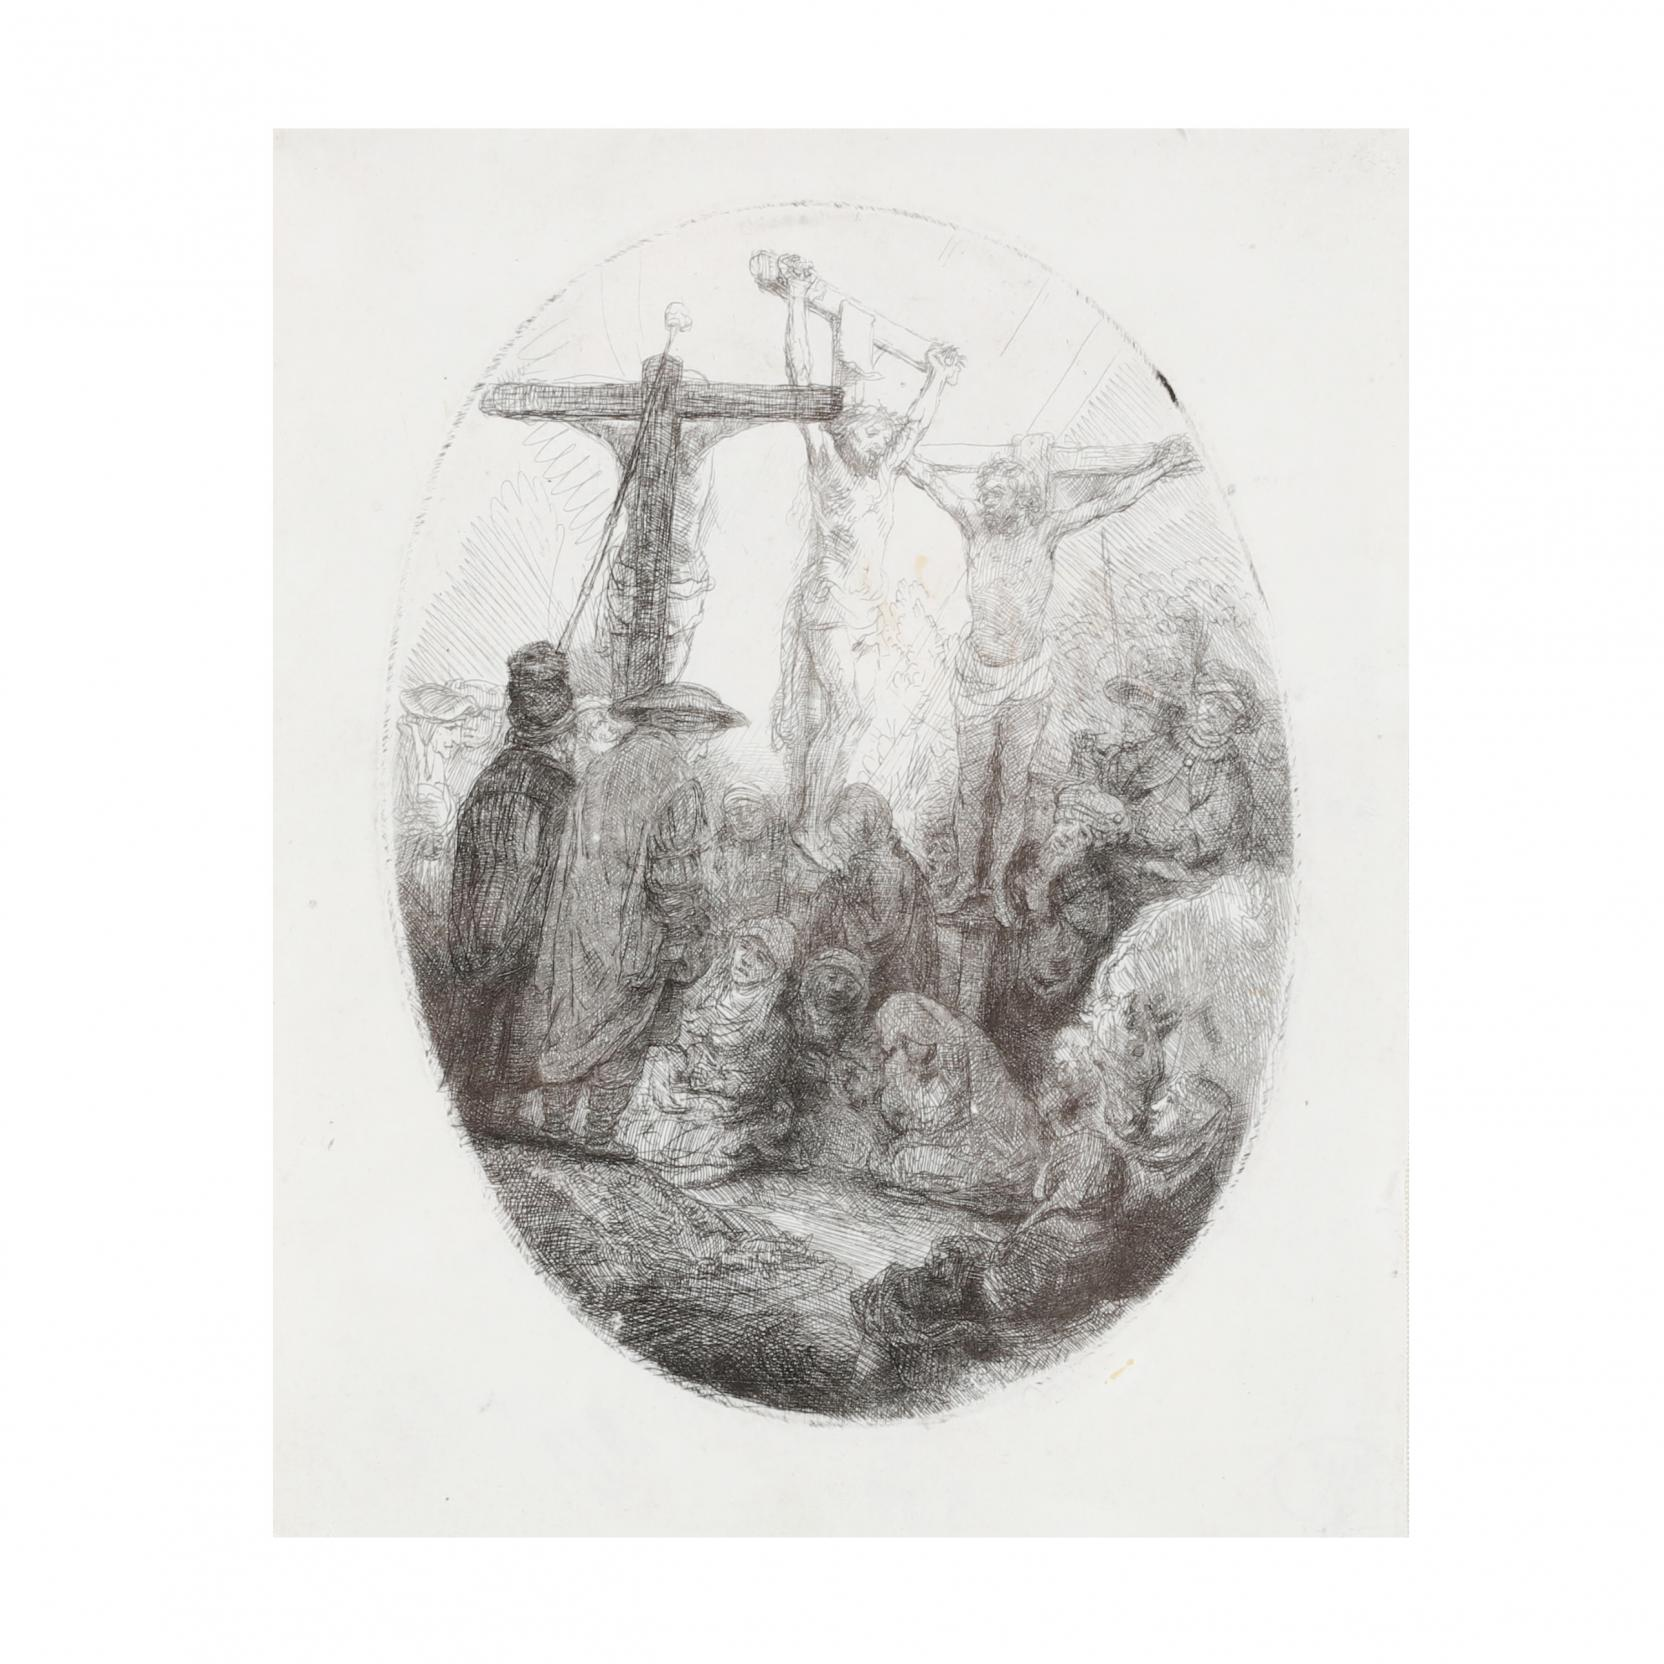 rembrandt-van-rijn-dutch-1606-1669-i-christ-crucified-between-two-thieves-an-oval-plate-i